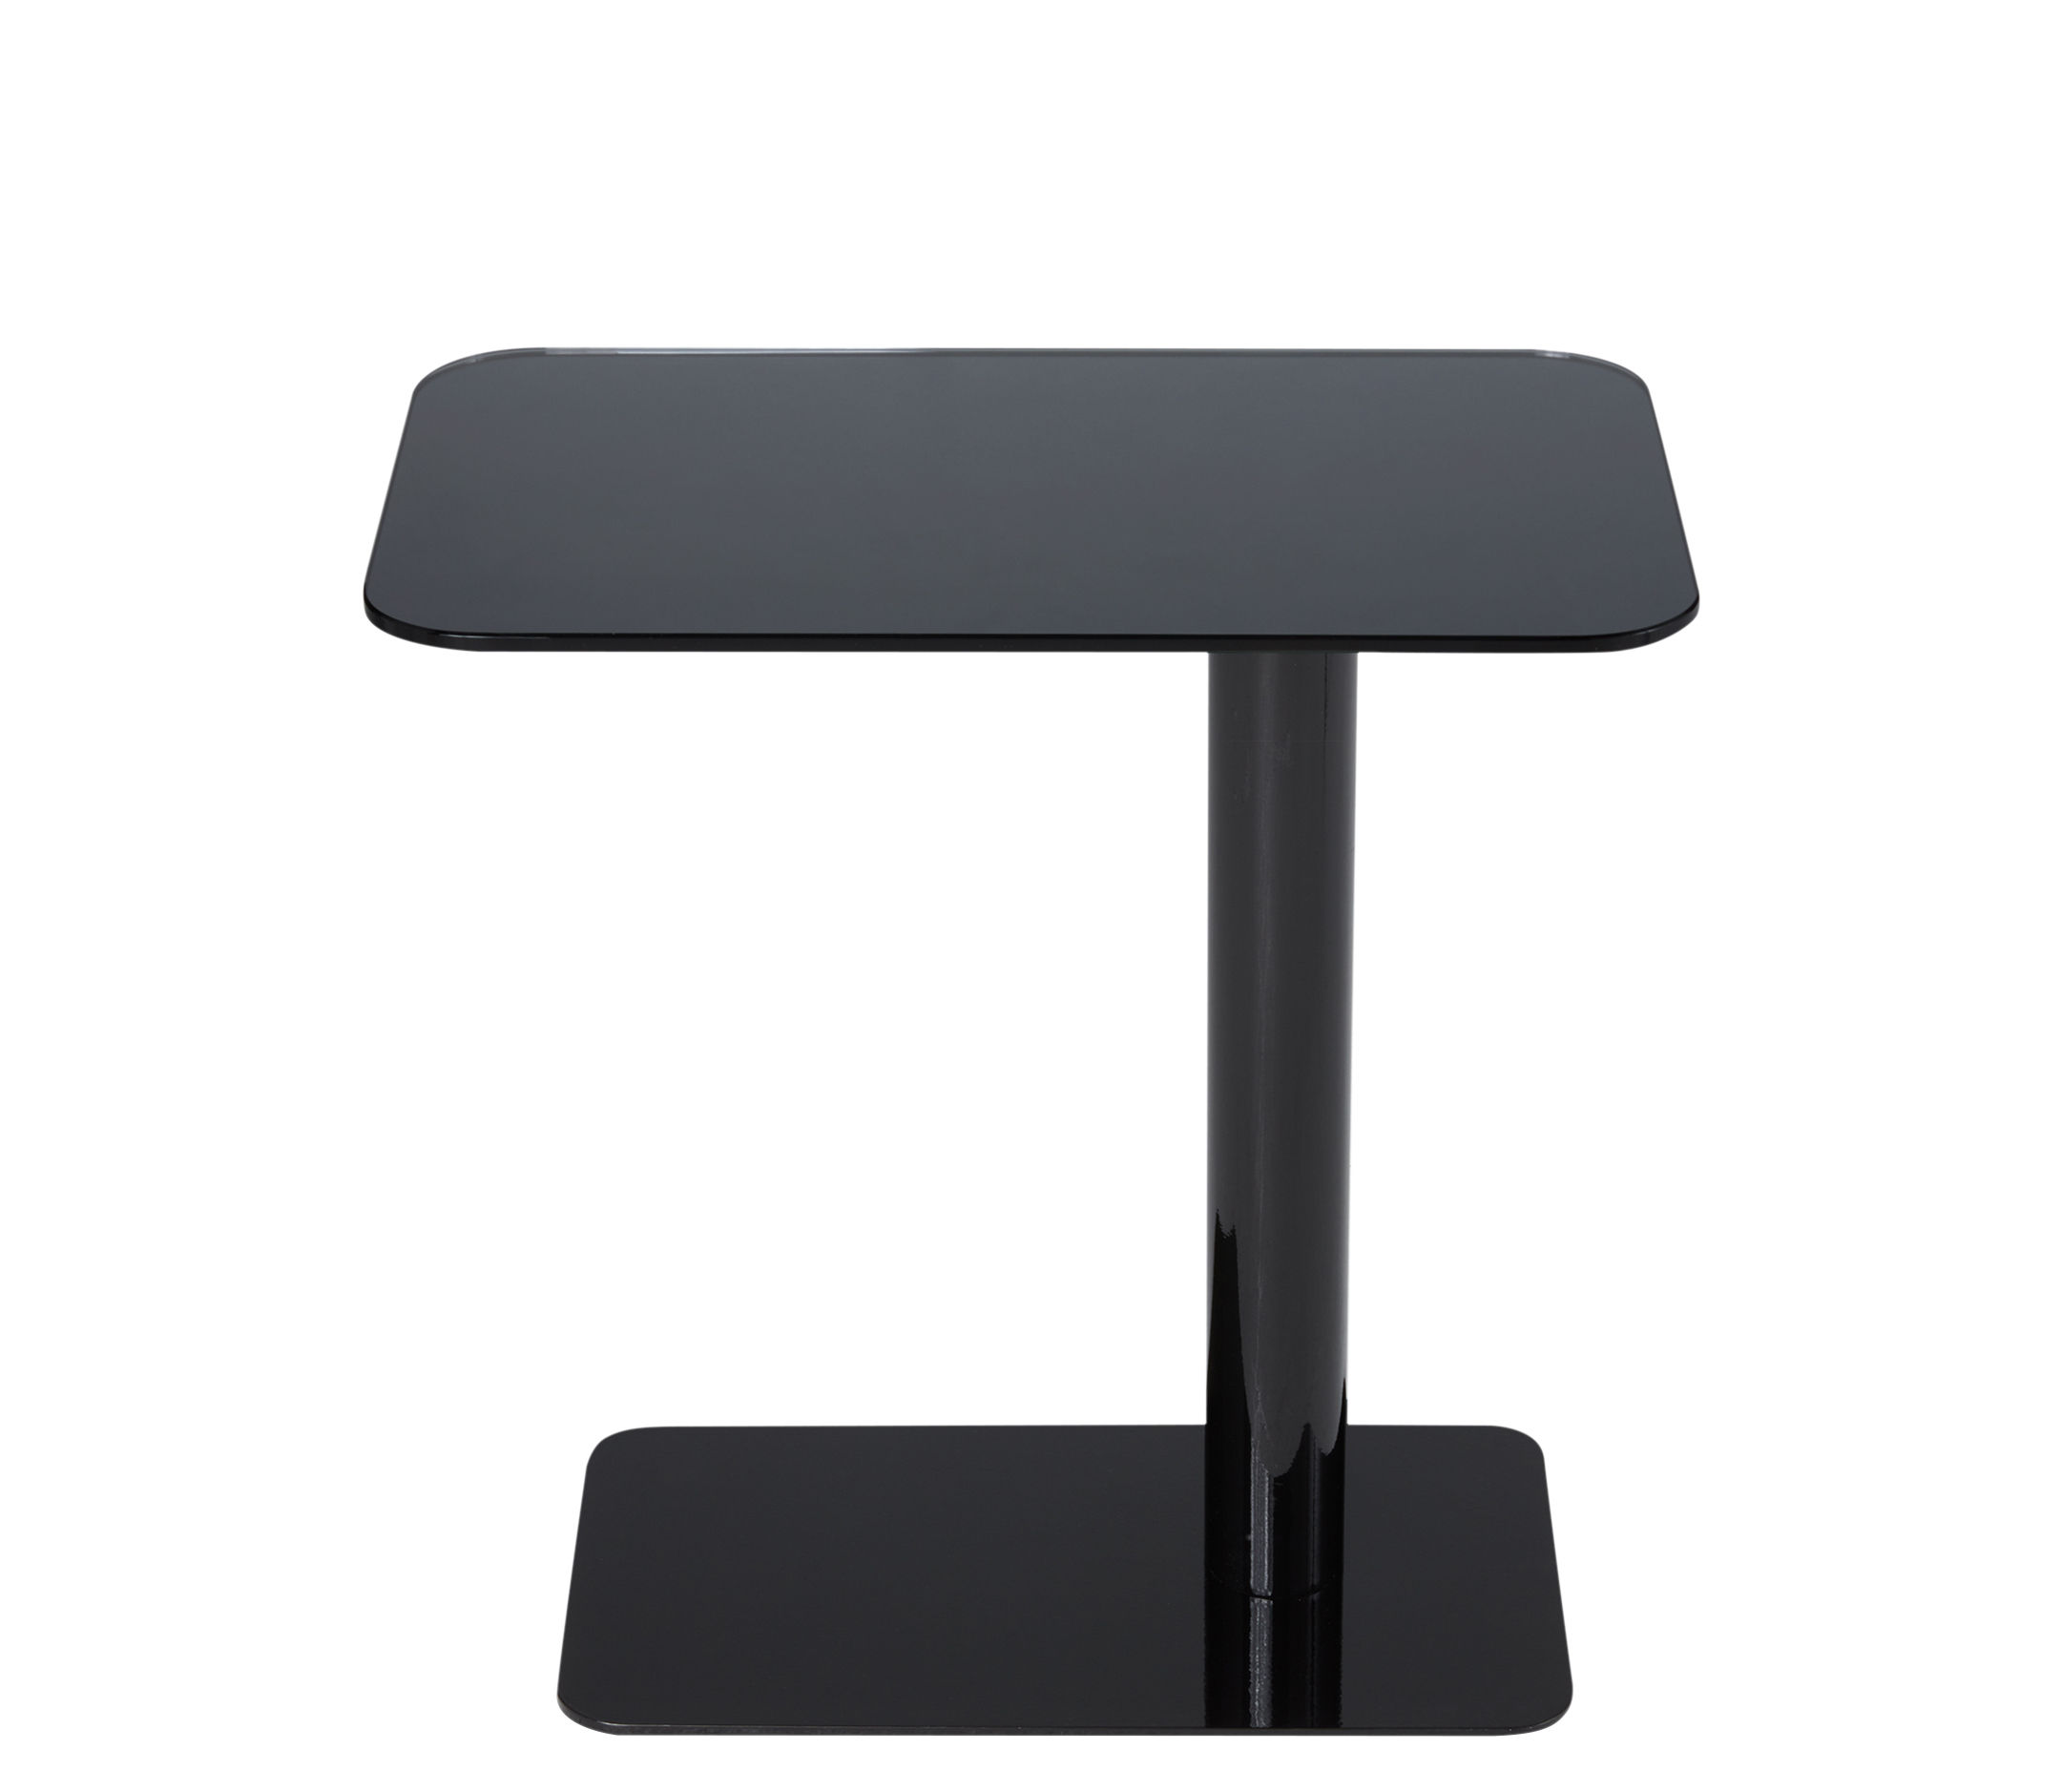 Furniture - Coffee Tables - Flash Coffee table - / Glass - 50 x 30 x H 40 cm by Tom Dixon - Black / Black base - Glass, Lacquered steel